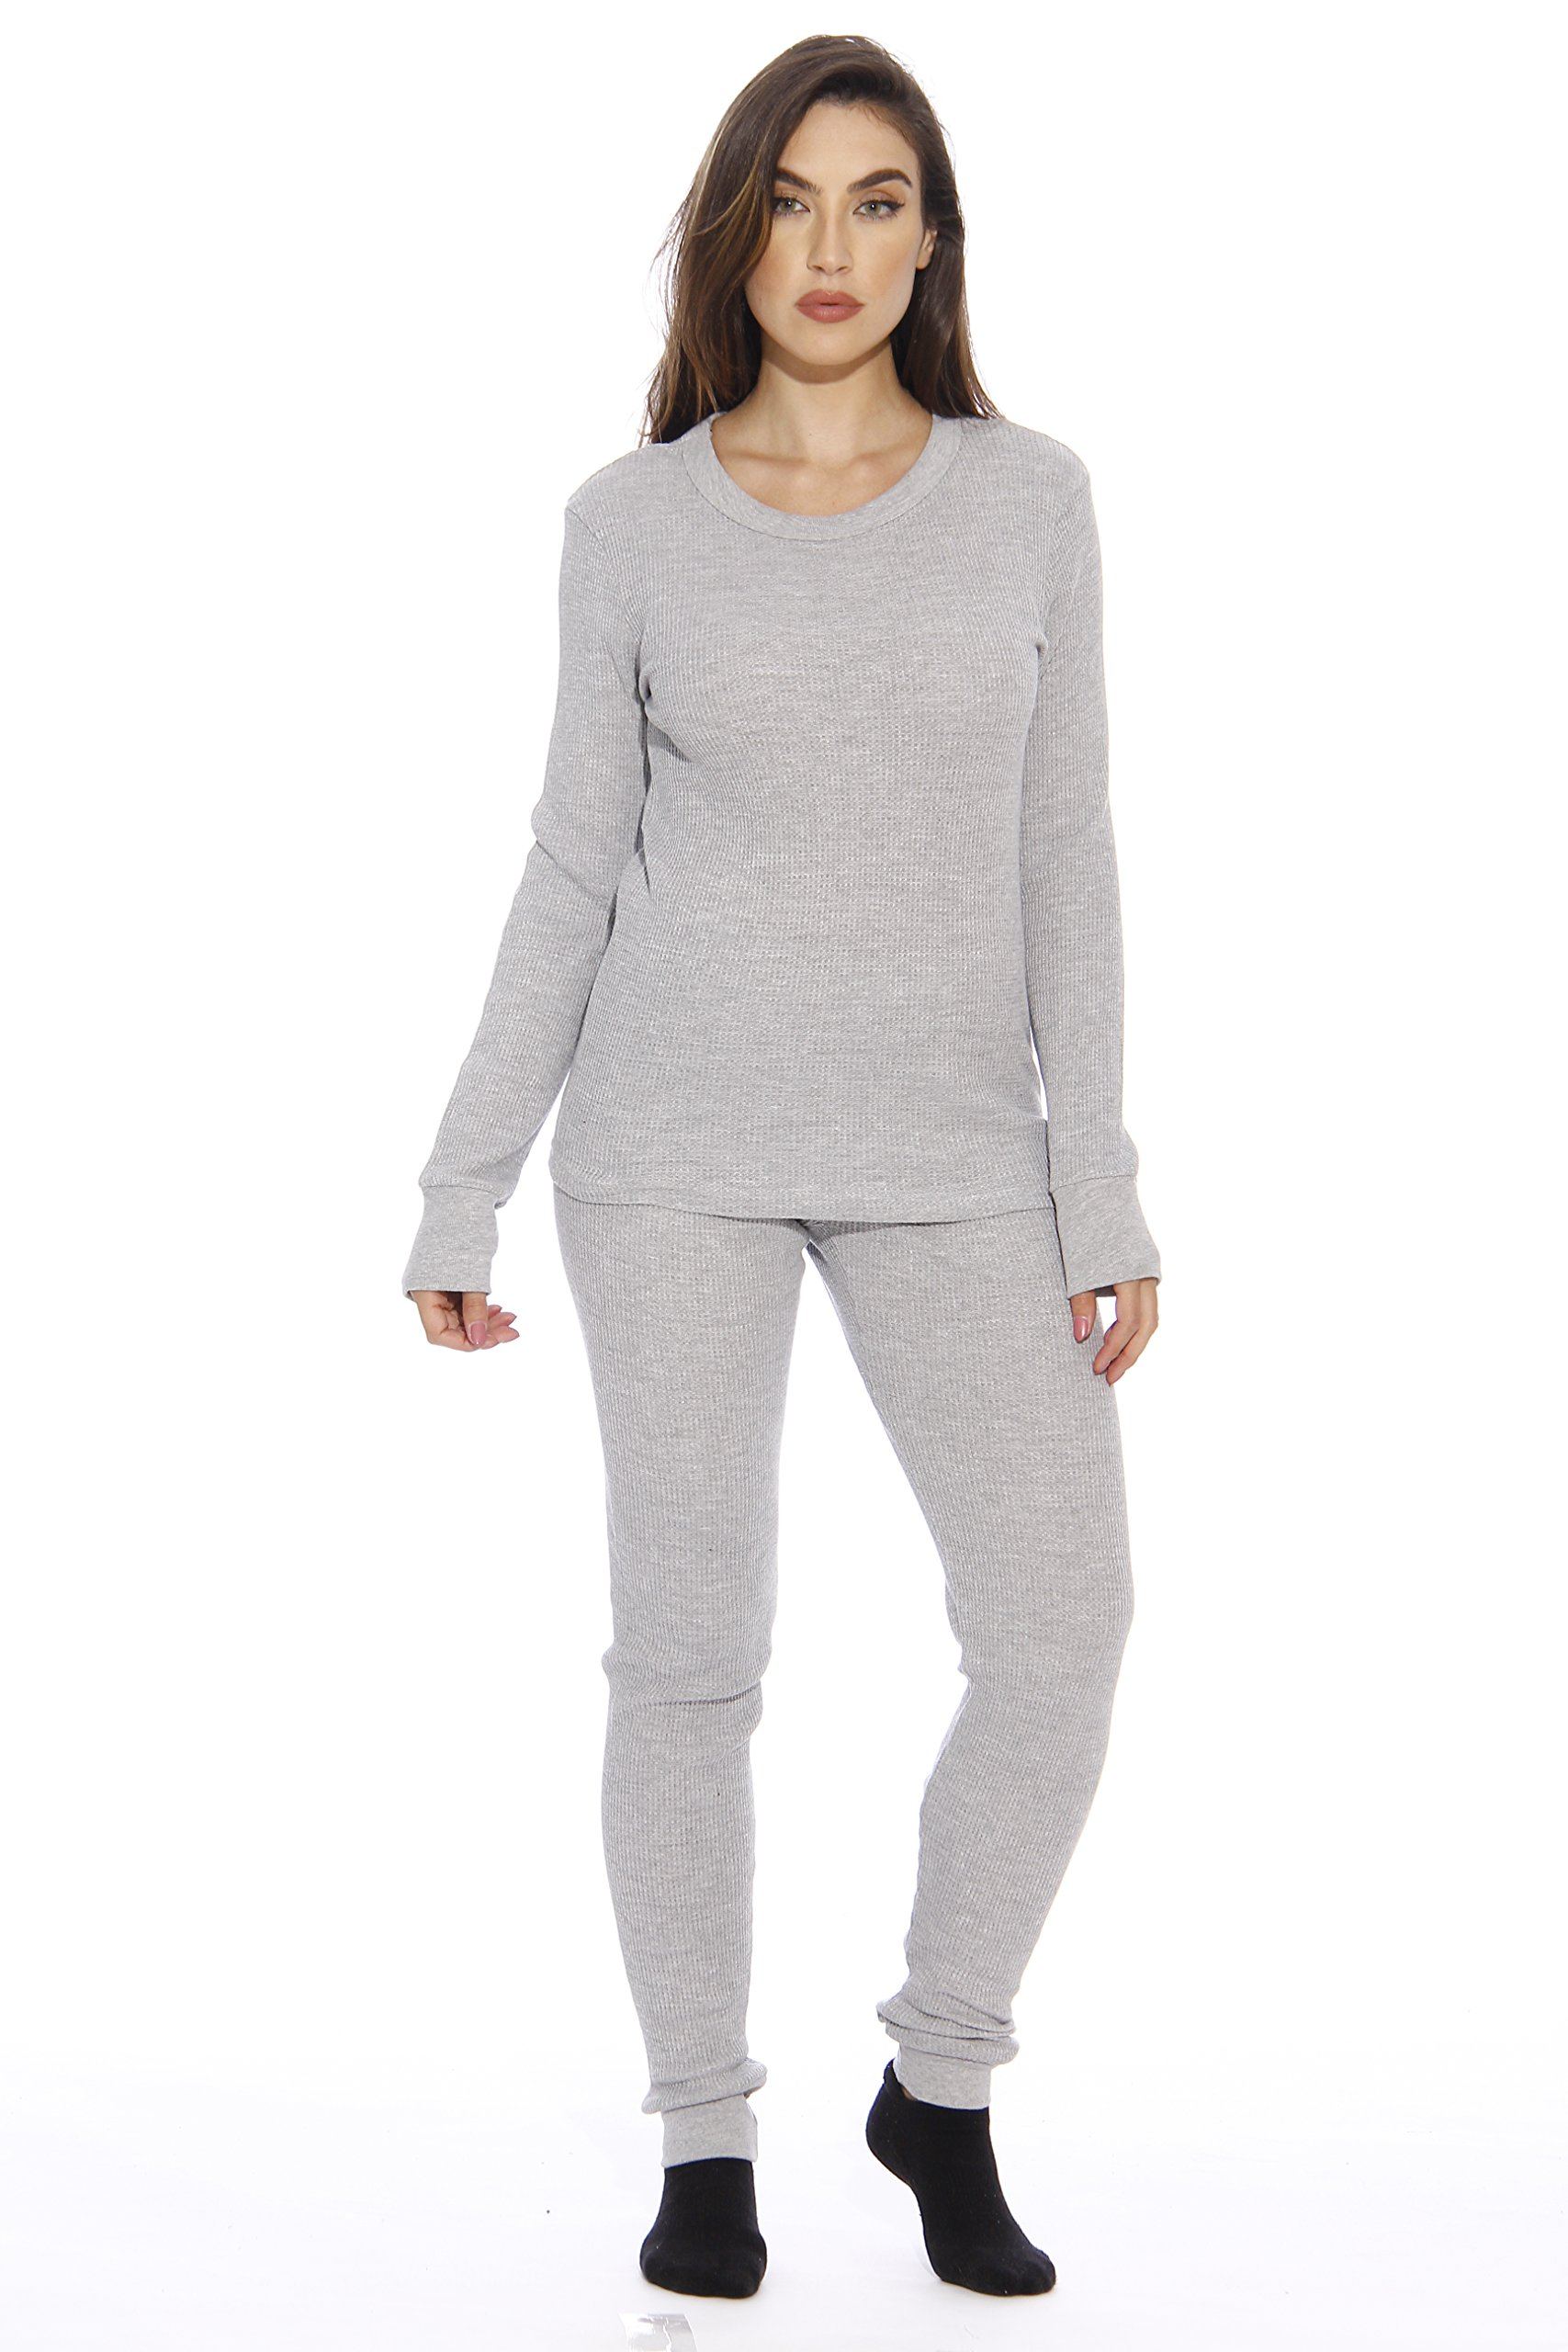 95862-Grey-XL Just Love Women's Thermal Underwear Set / Base Layer Thermals